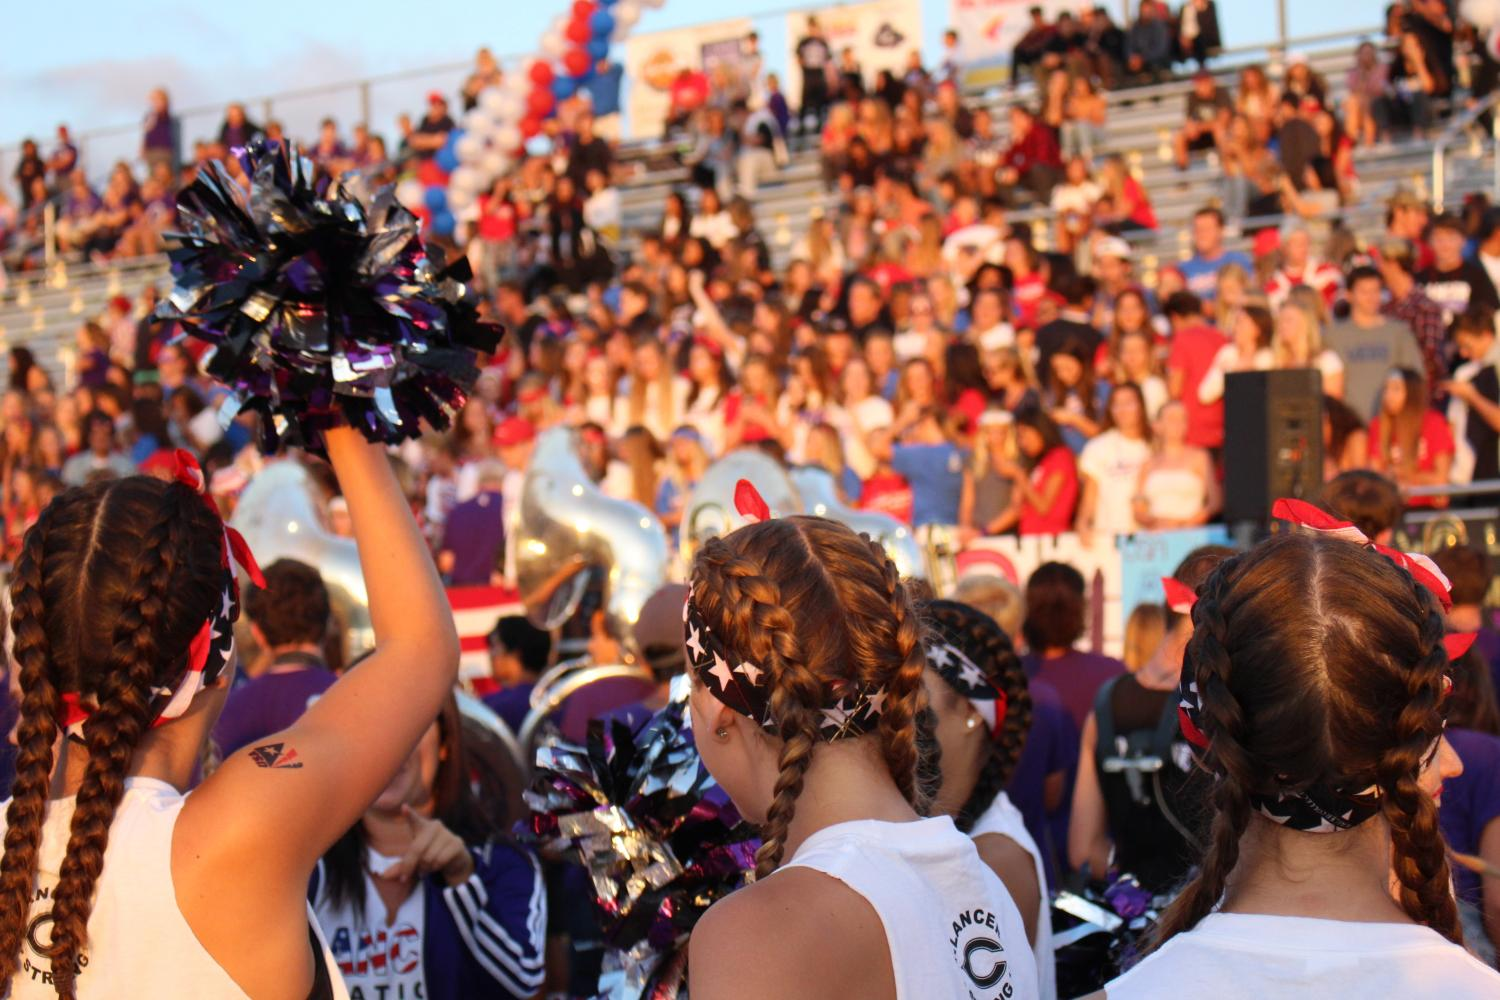 Lancer Dancers look into the crowd as they get ready to perform.